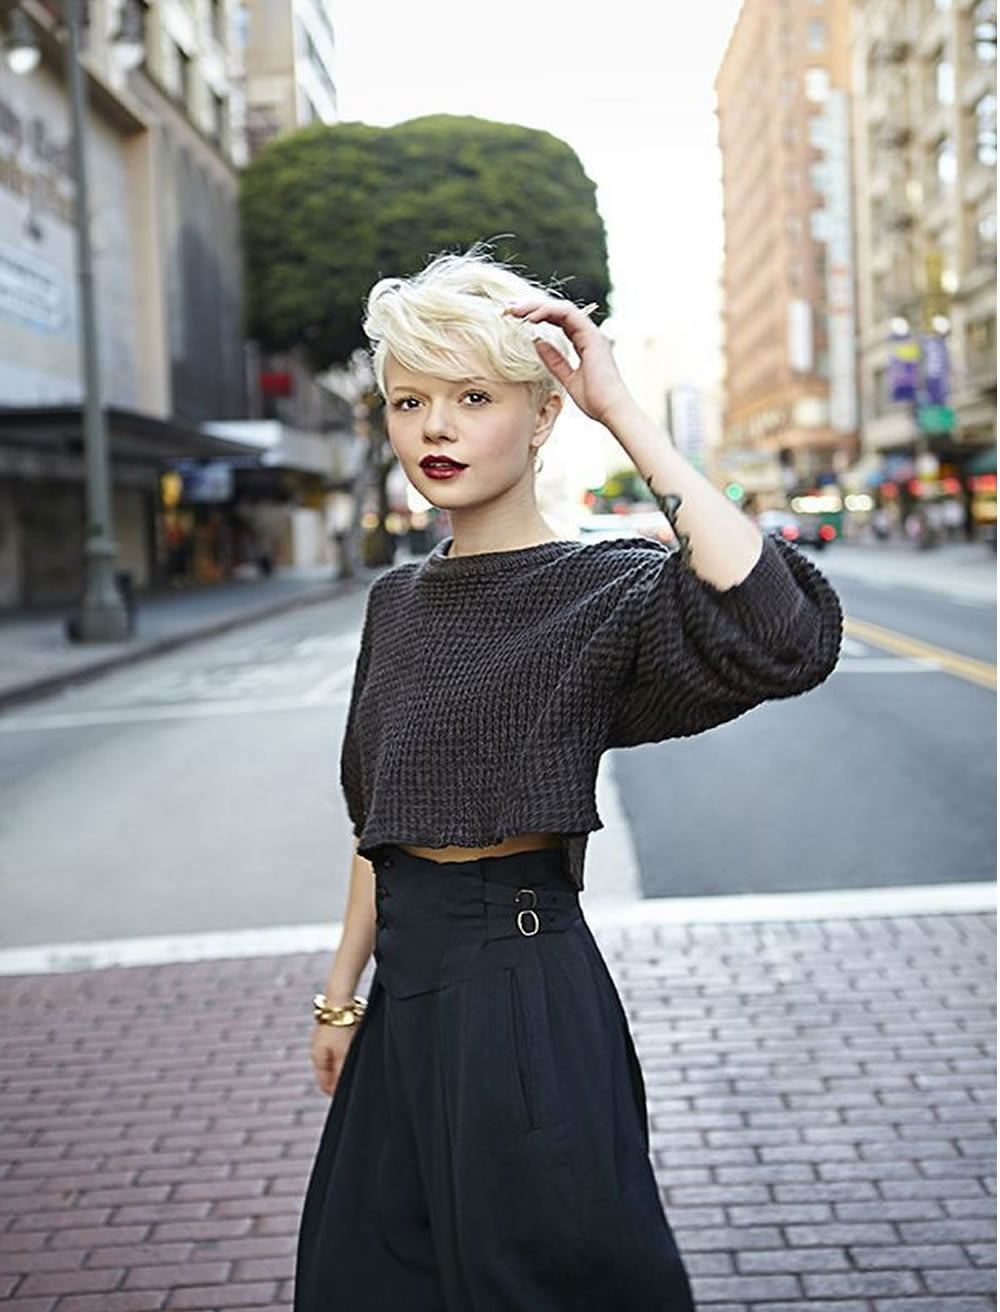 50 Very Short Pixie Haircut 2018 Hairstyles And Hair